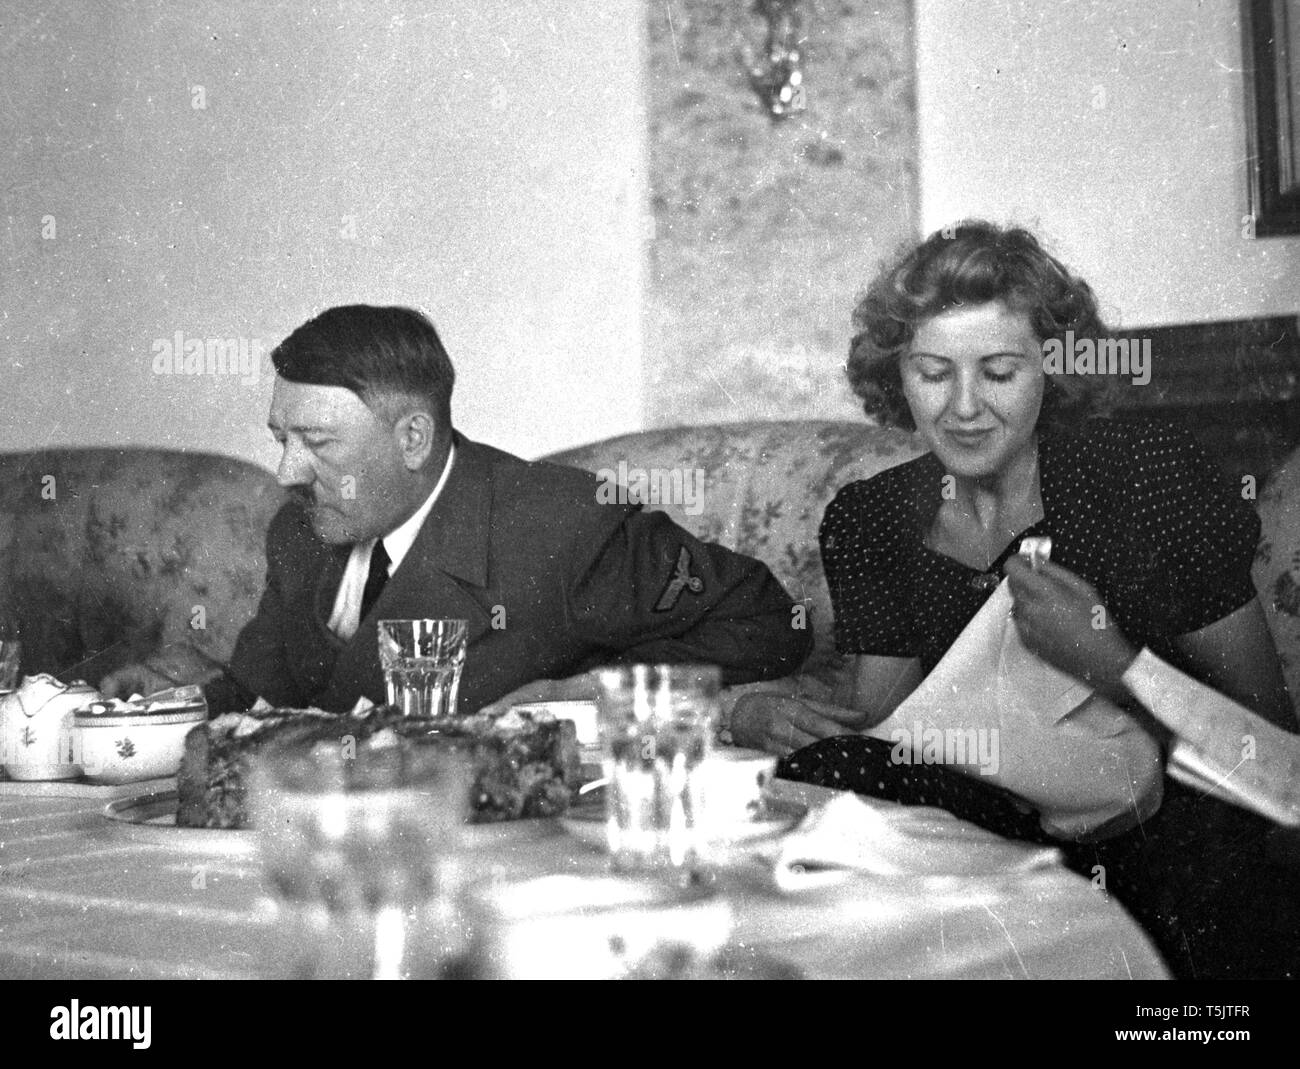 Eva Braun Collection (dvadvadaset) - Candid photo of Adolf Hitler ca. late 1930s or early 1940s - Stock Image